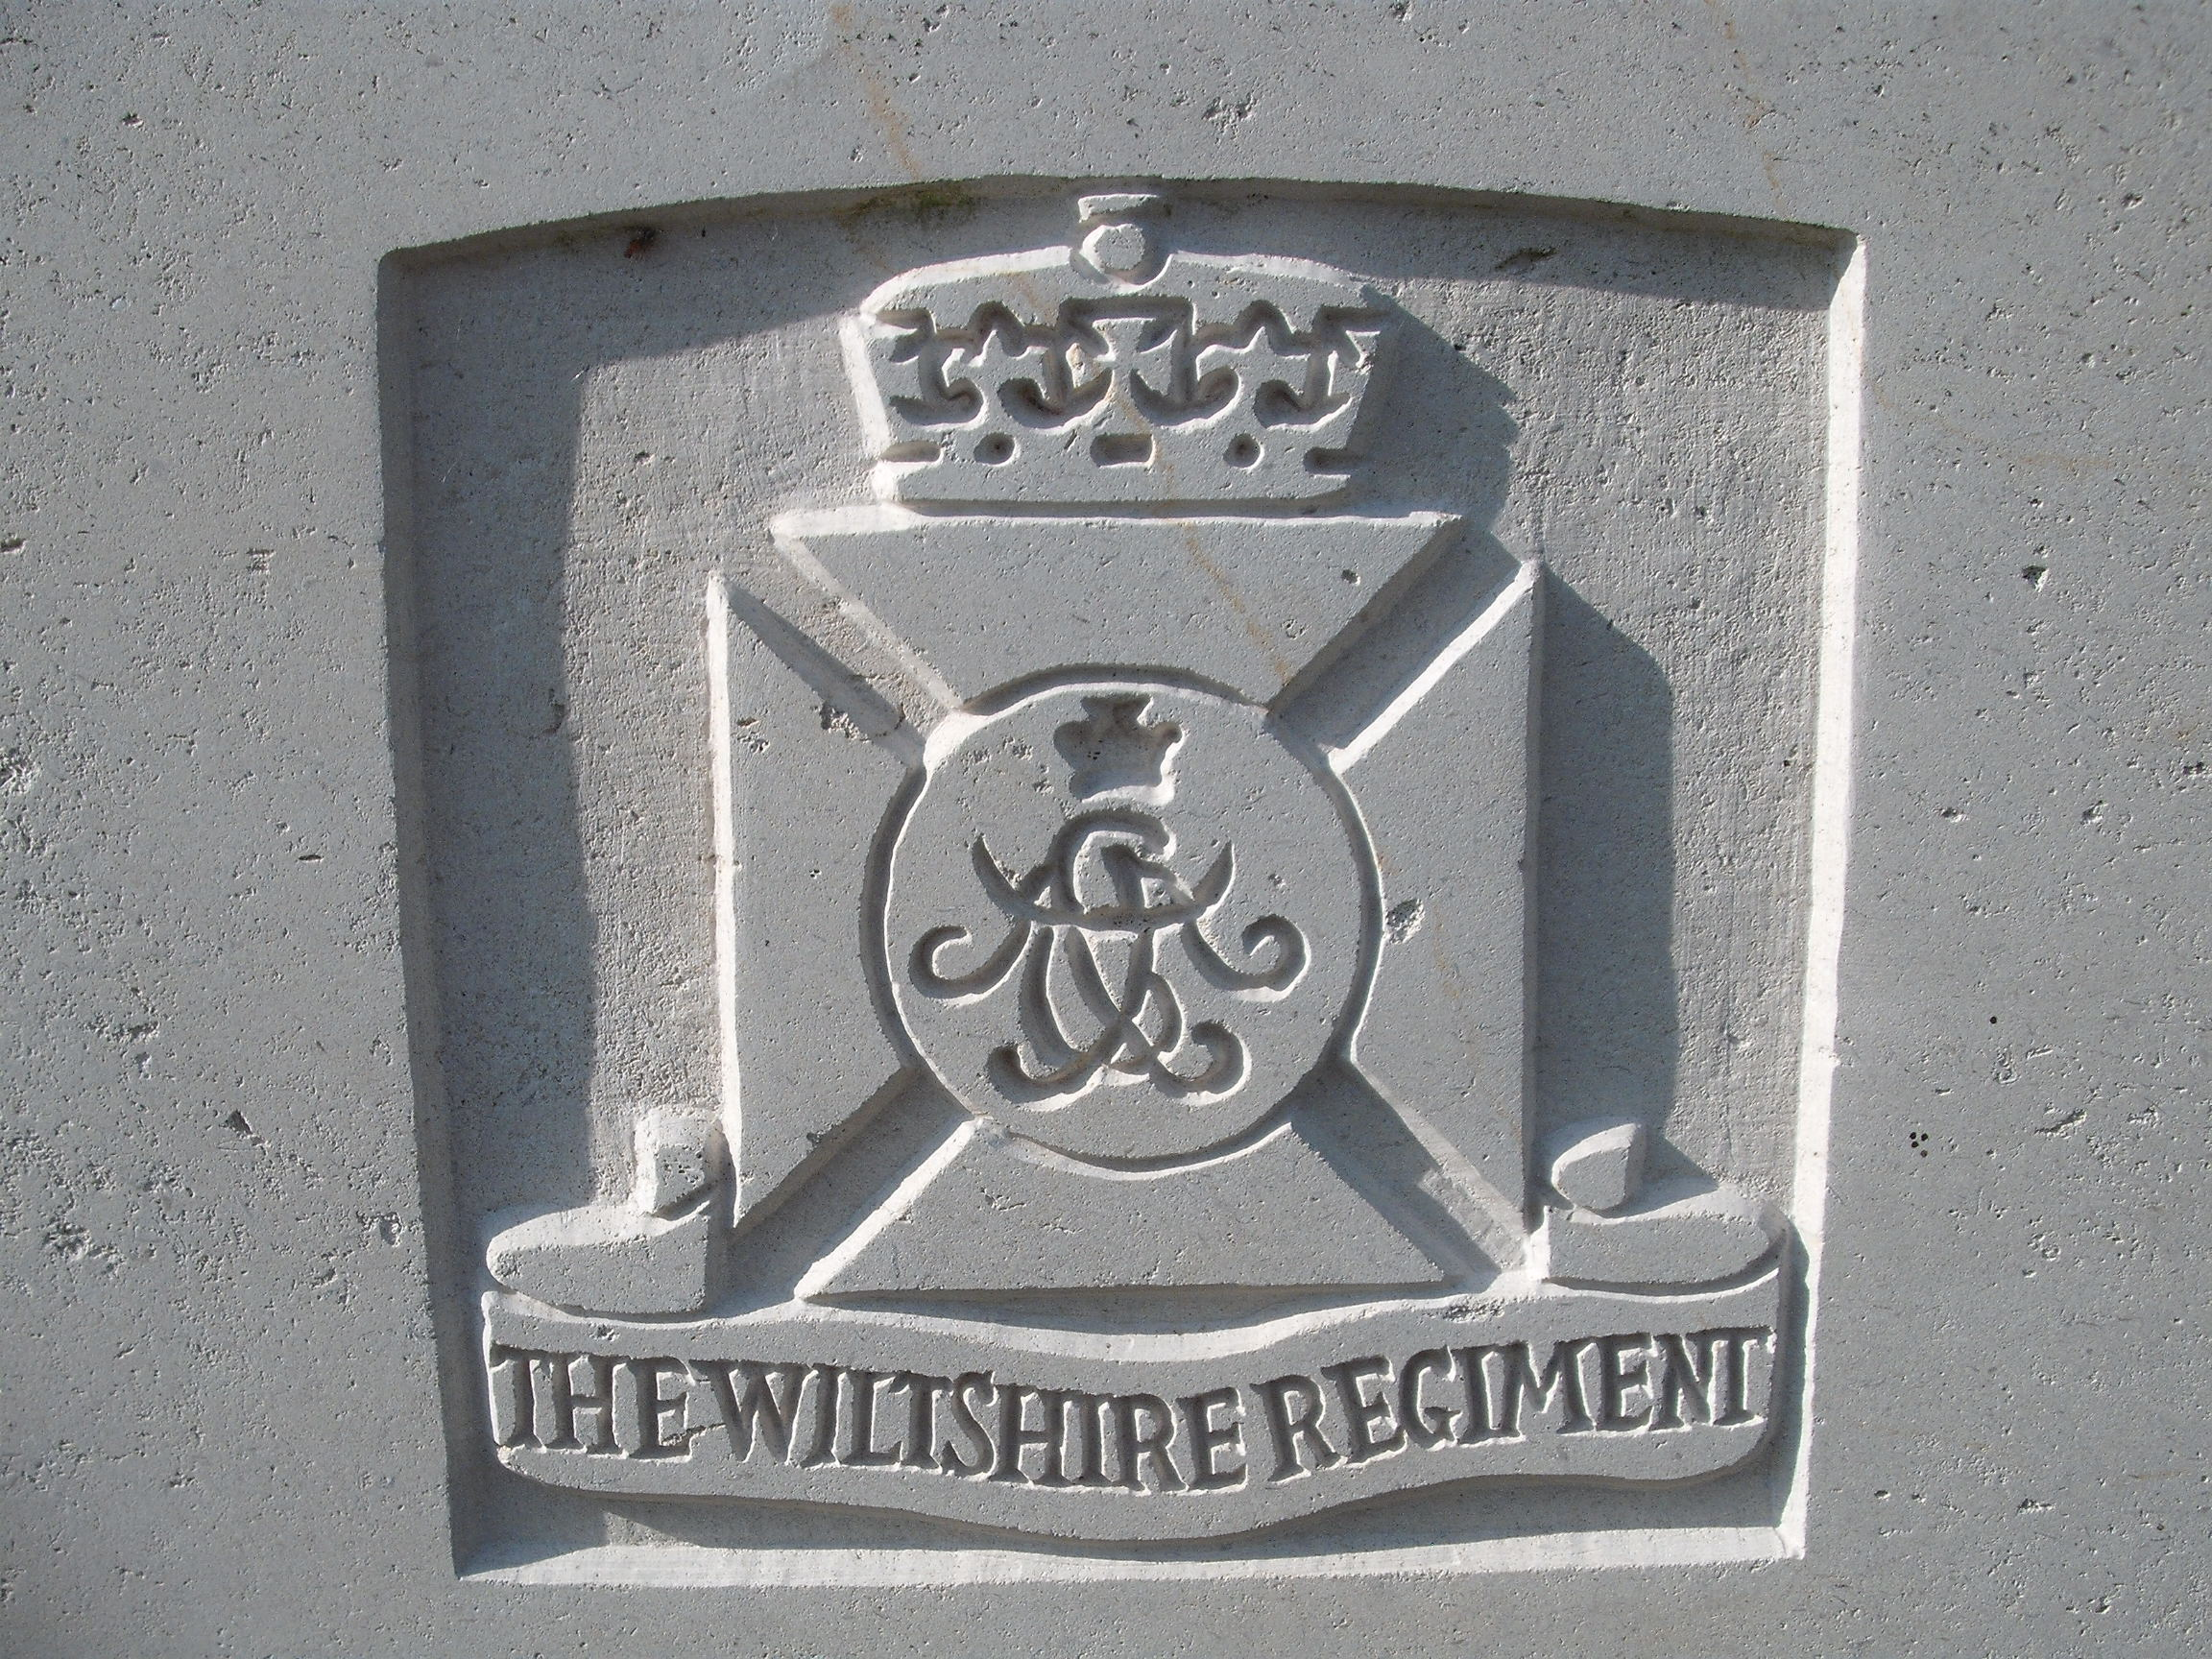 Capbadge of the Wiltshire Regiment